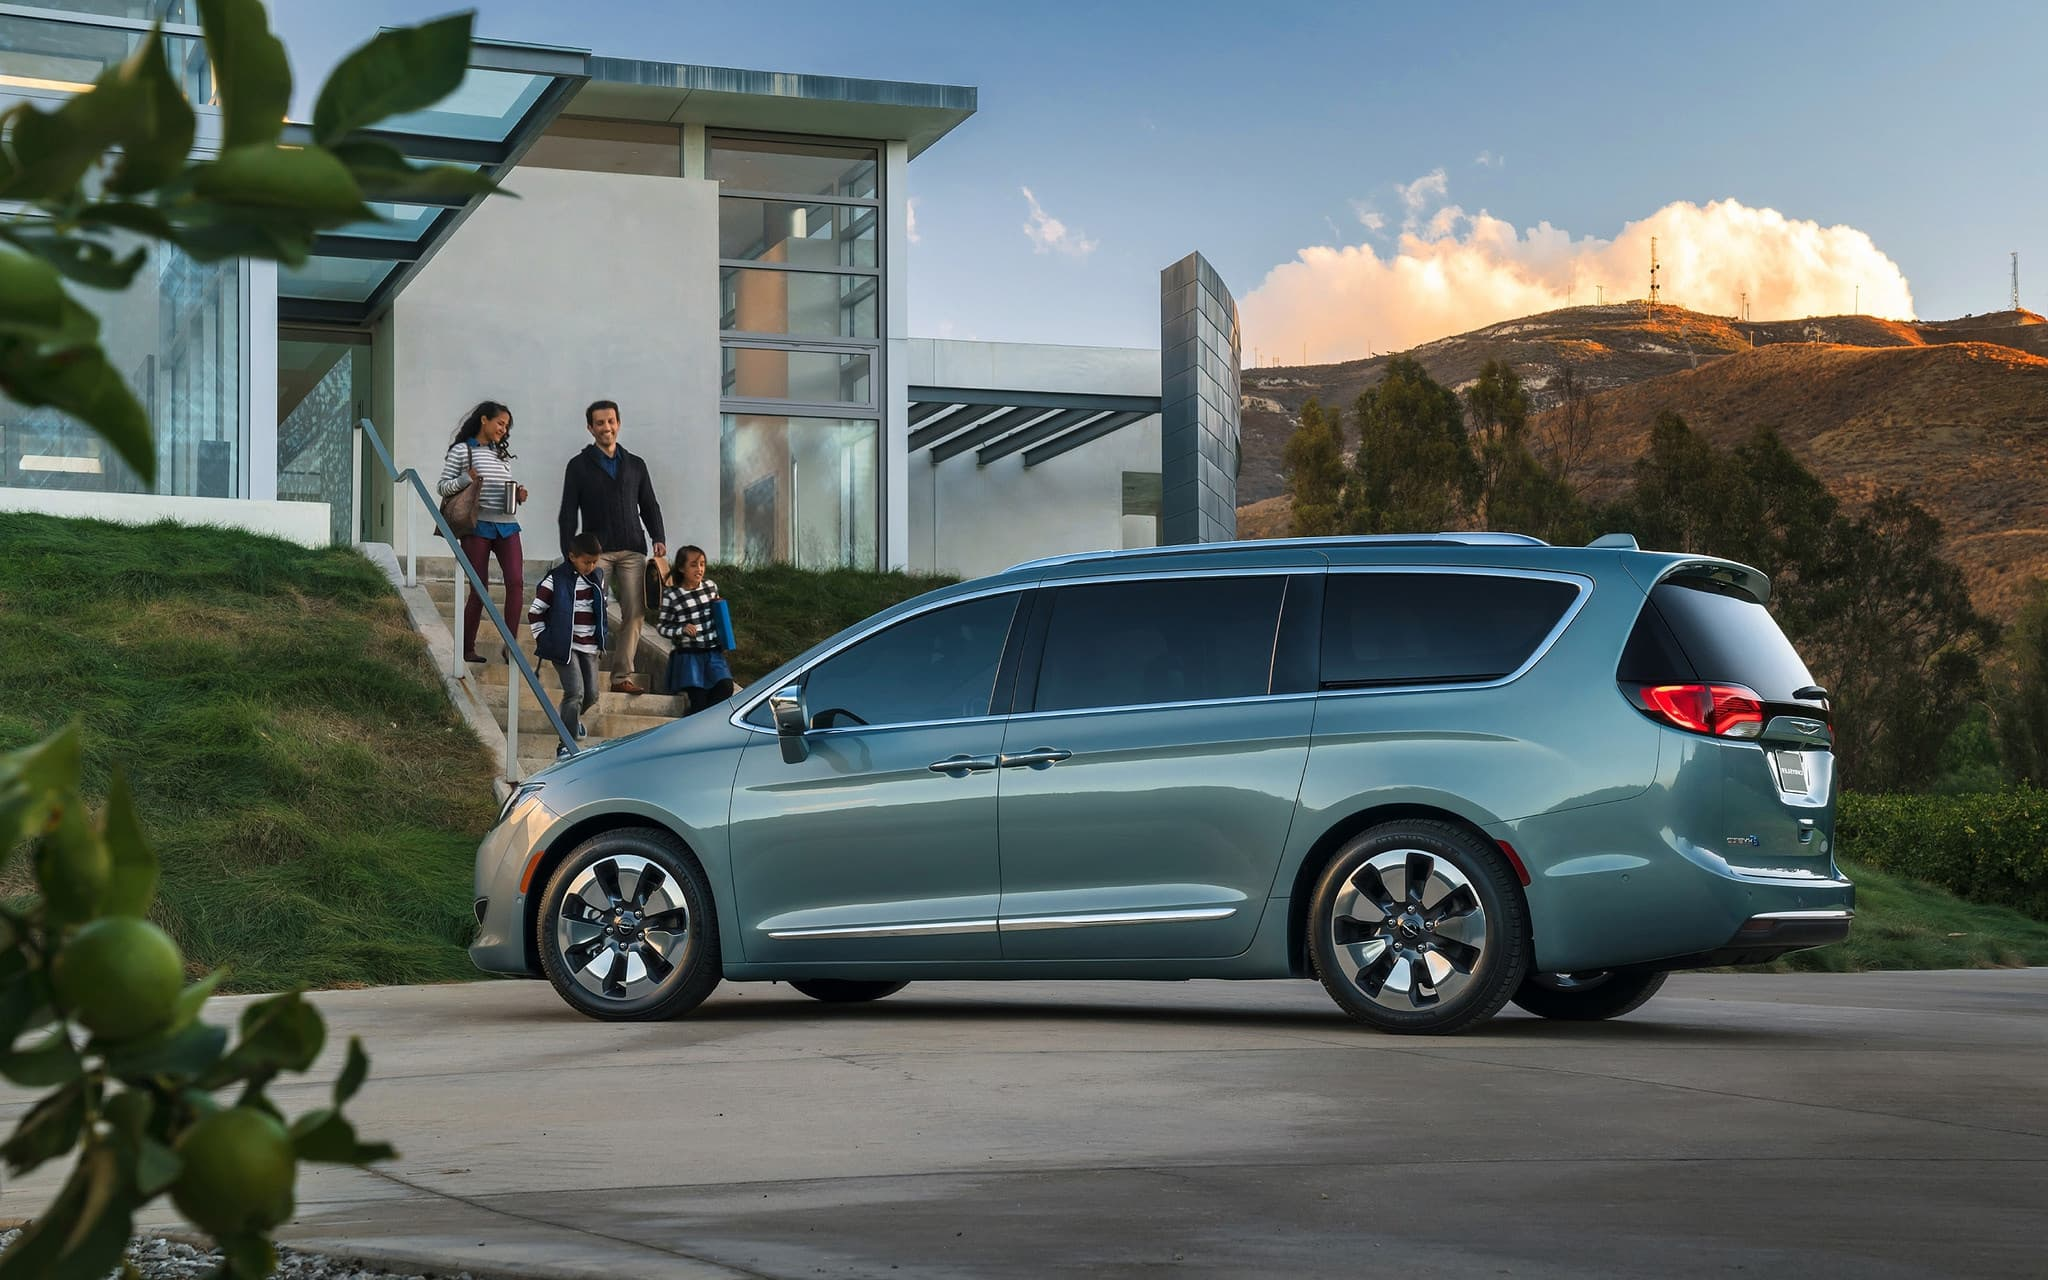 chrysler pacifica minivan 2016 wallpapers hd high quality resolution. Black Bedroom Furniture Sets. Home Design Ideas